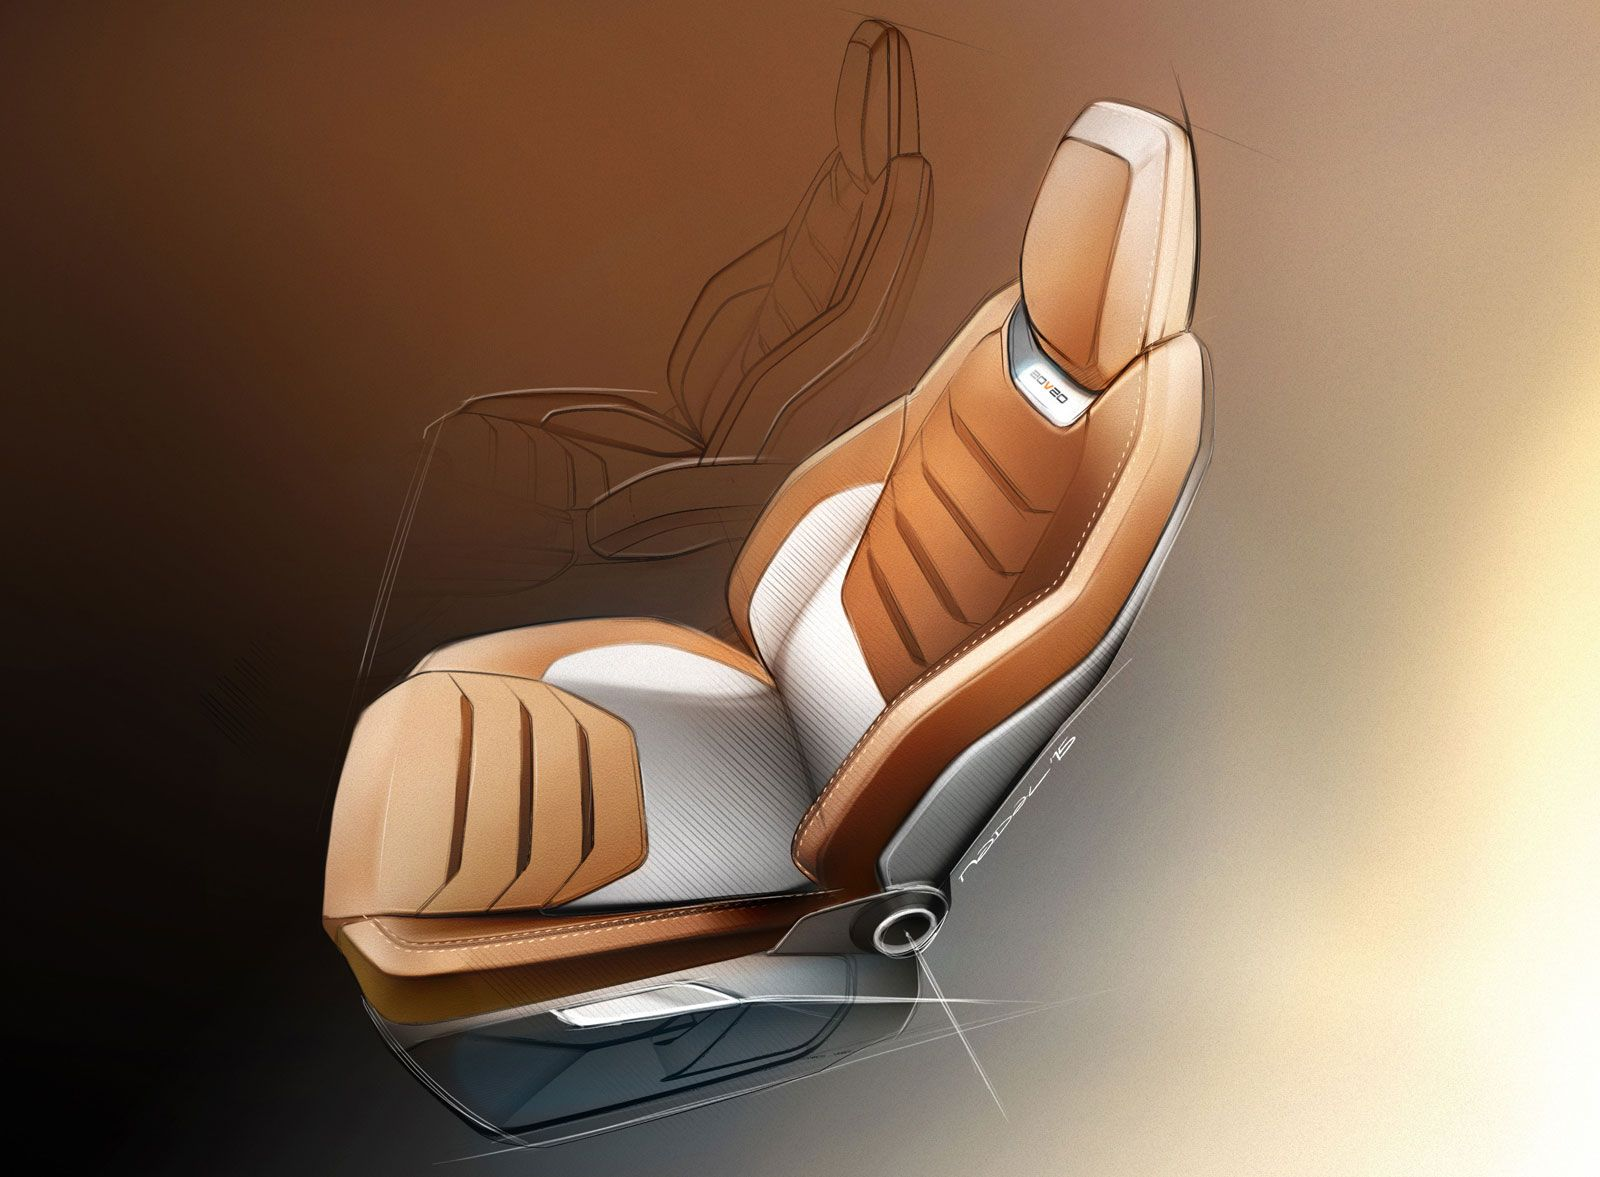 Seat 20v20 Concept Interior Design Sketch Seat Car